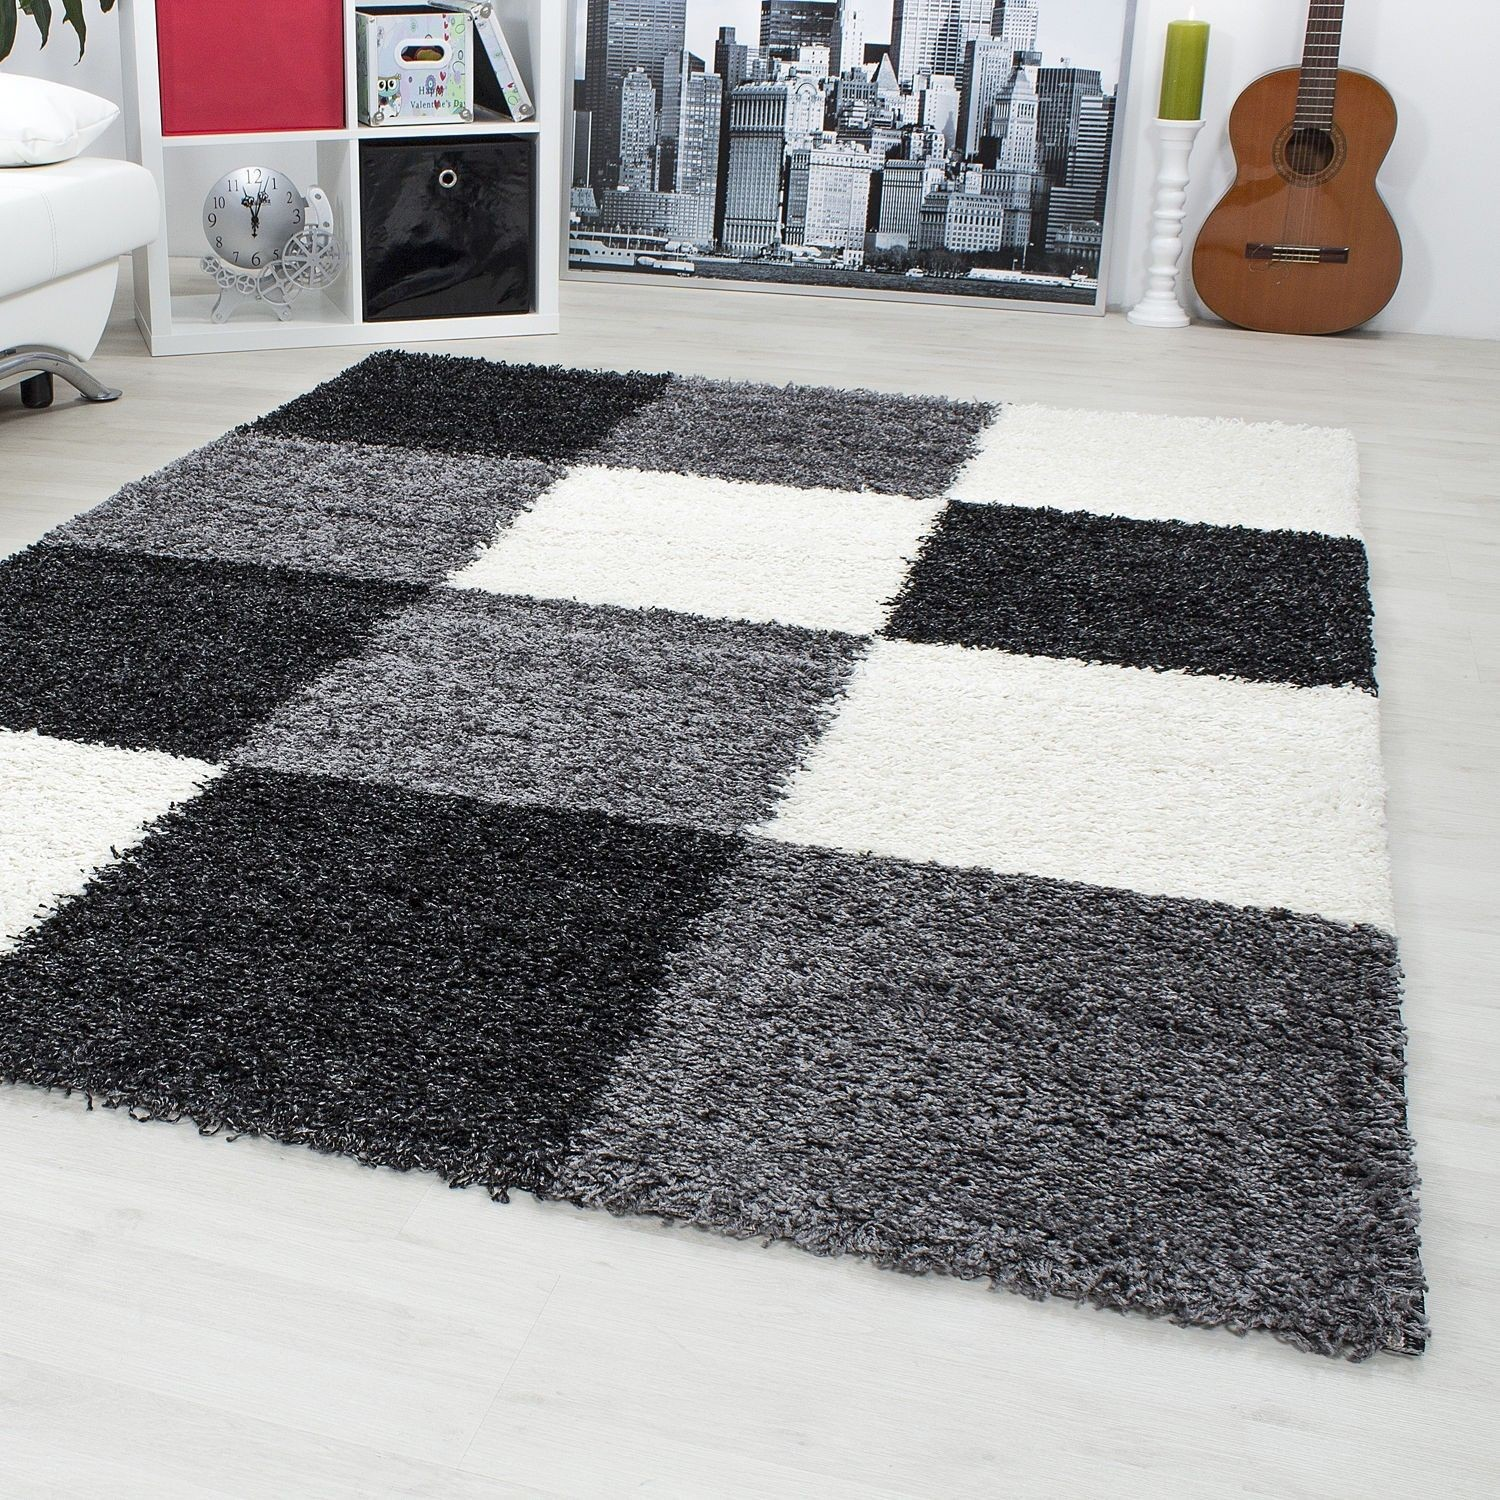 tapis shaggy longues m ches noir blanc gris hautes. Black Bedroom Furniture Sets. Home Design Ideas